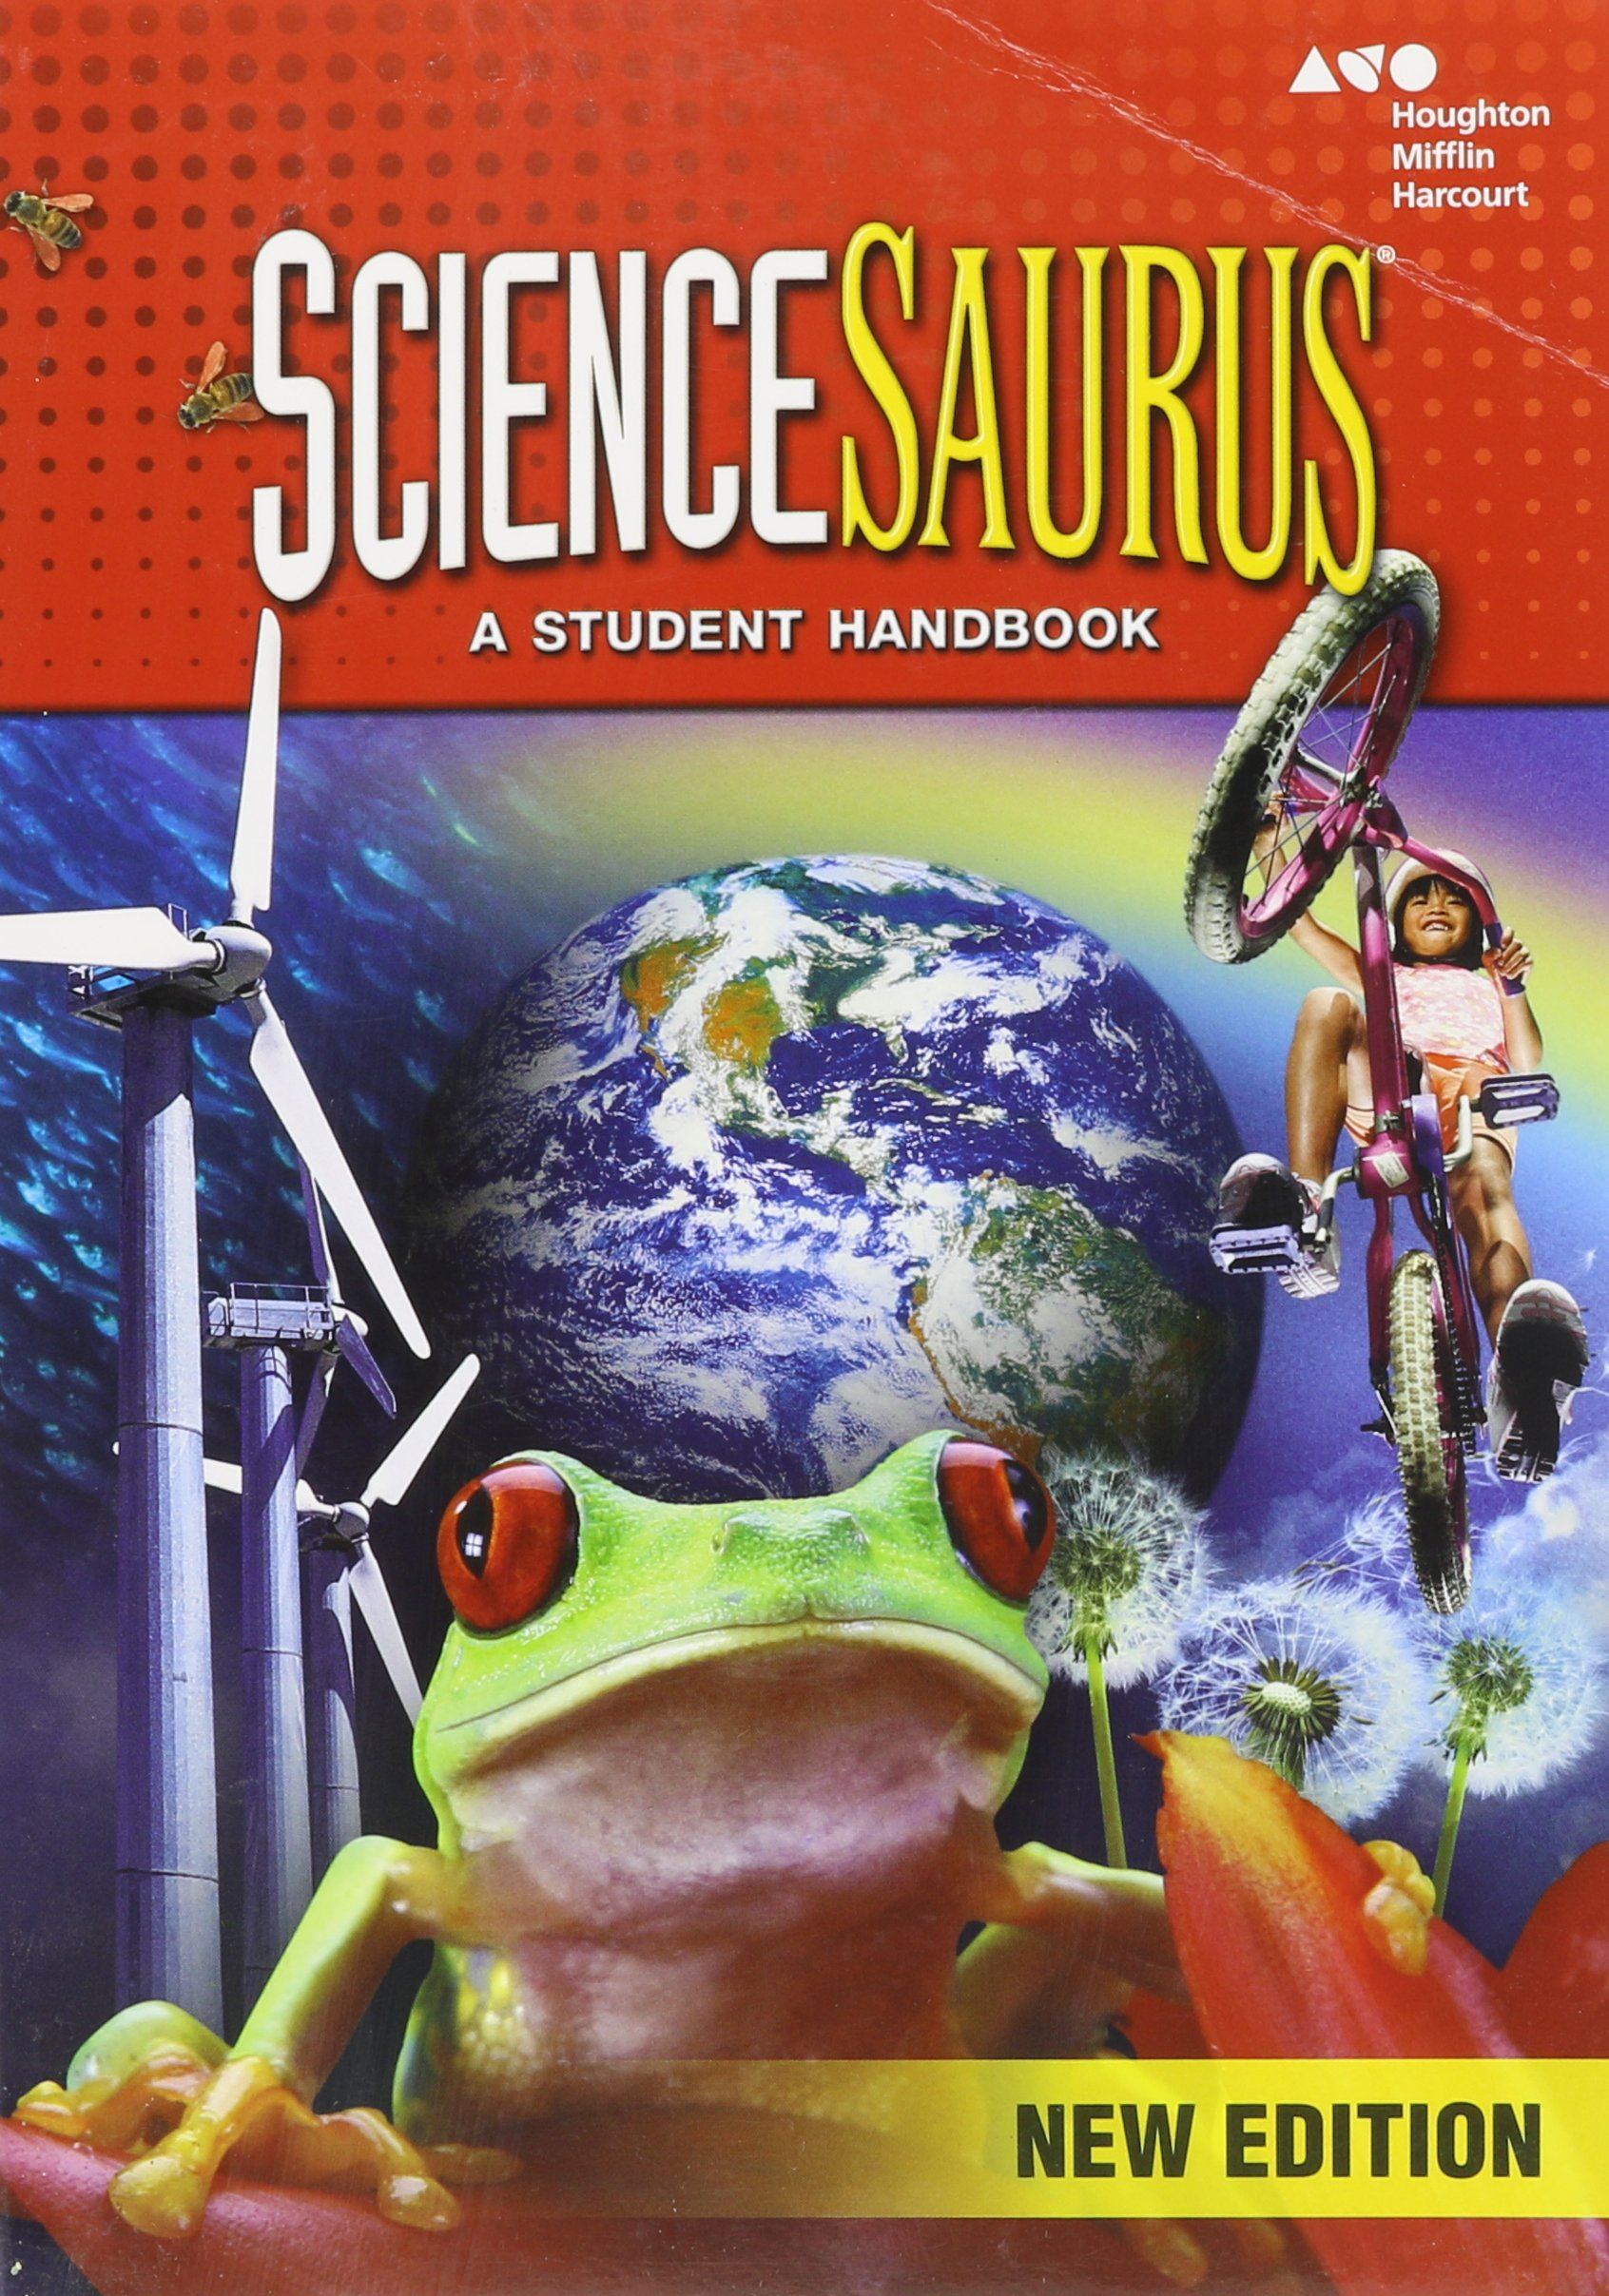 Worksheets Sciencesaurus Worksheets sciencesaurus student handbook softcover grades 2 3 houghton mifflin harcourt 9780544057838 amazon com books